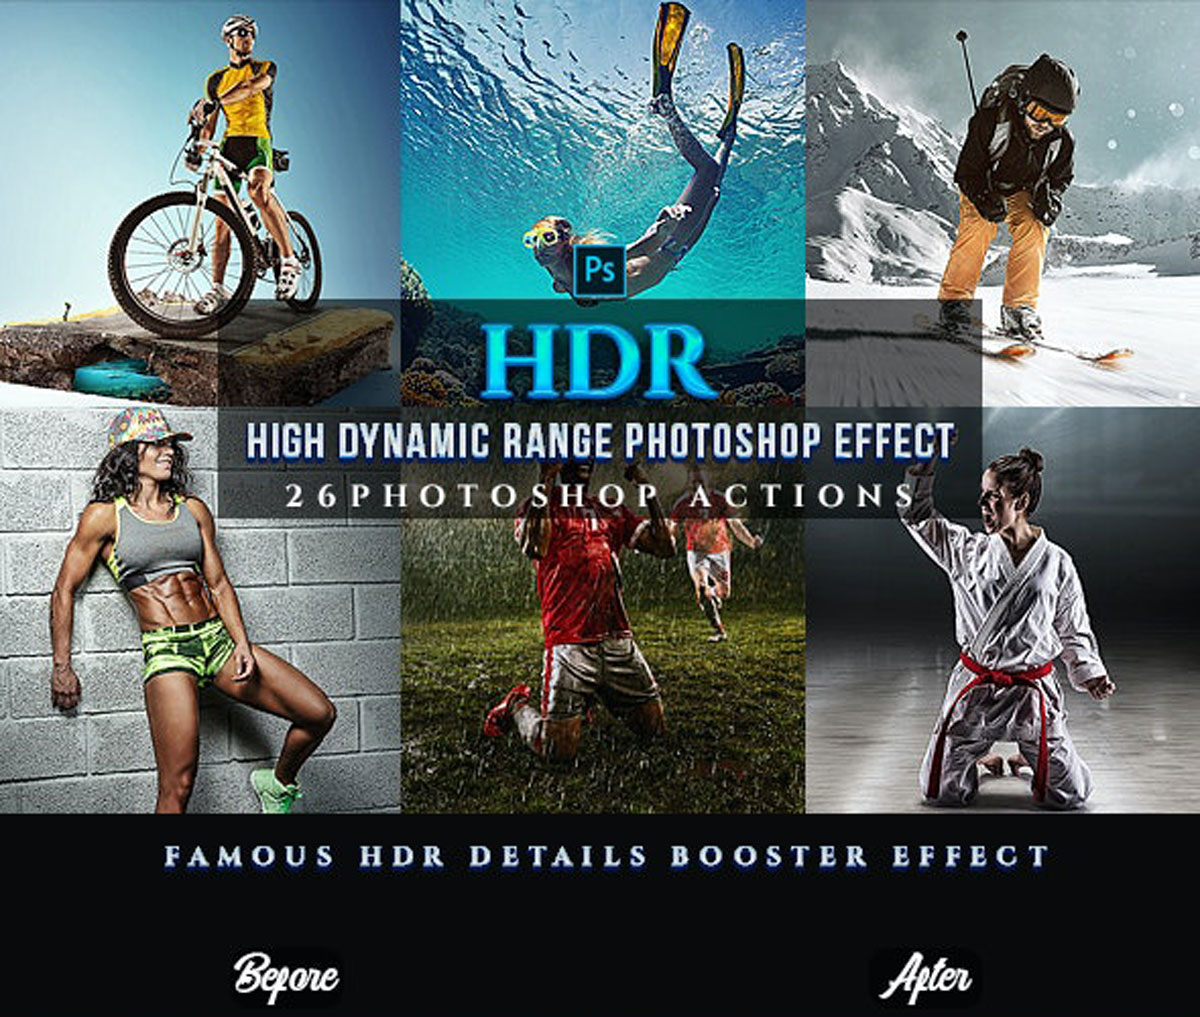 GraphicRiver - HDR Sport Magazine Photoshop 26 Effects 24381878